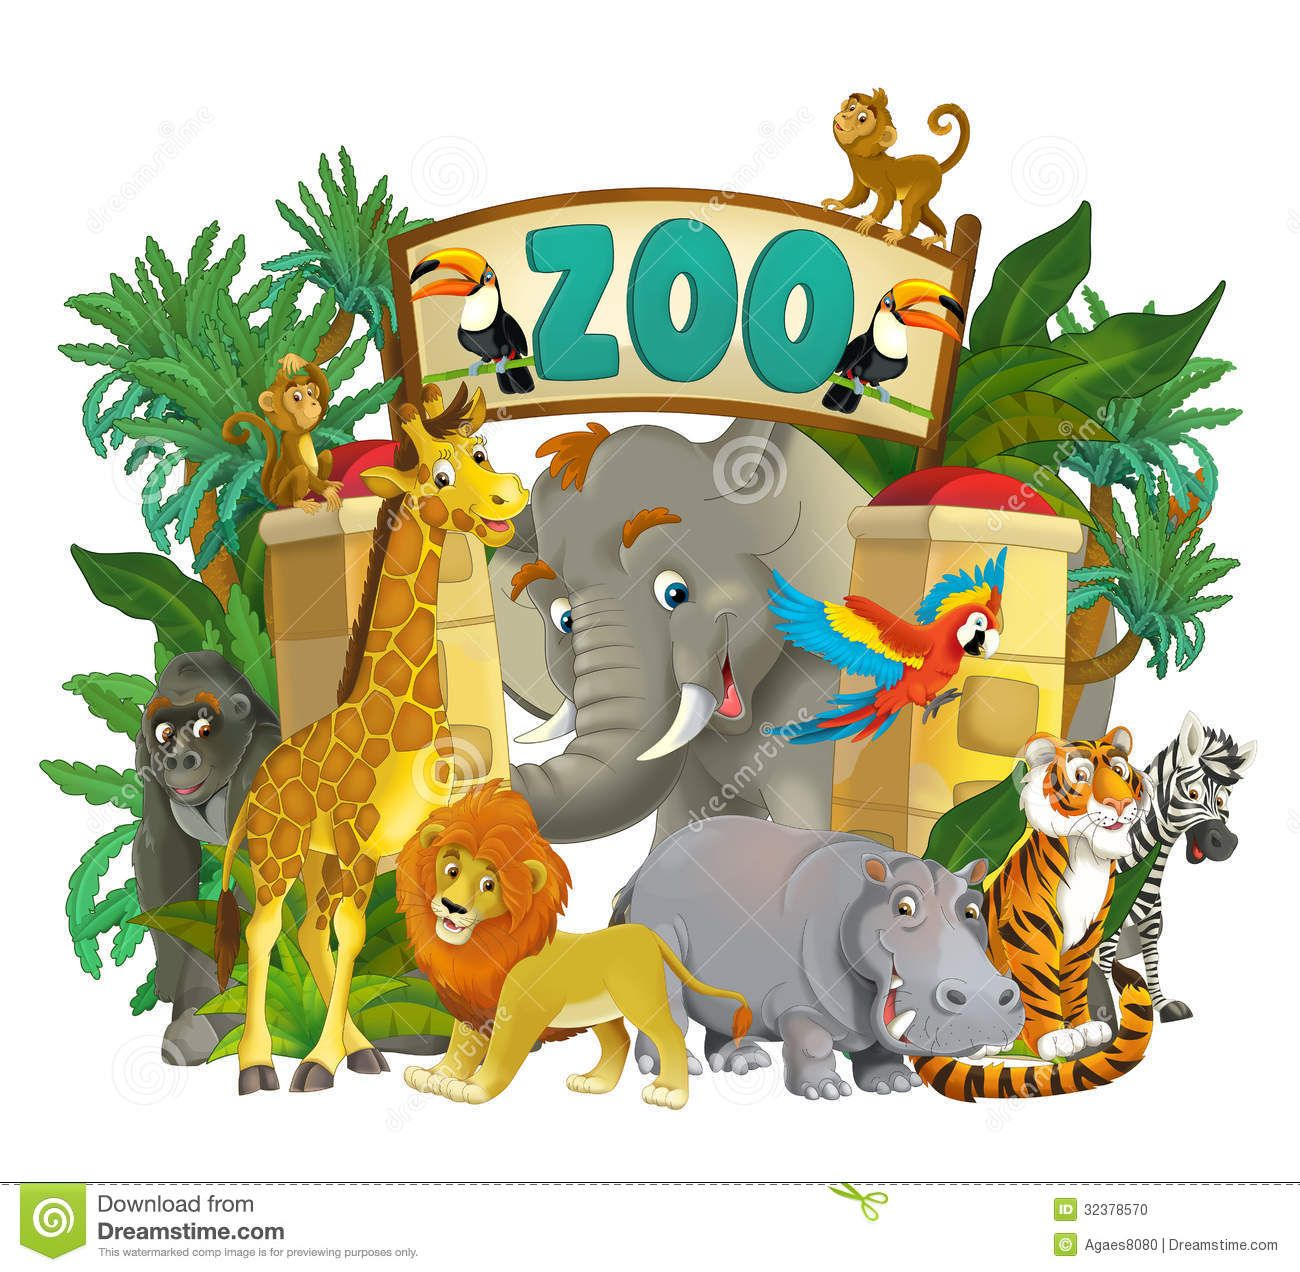 Cartoon Images Of Zoo Animals on Share Online Art